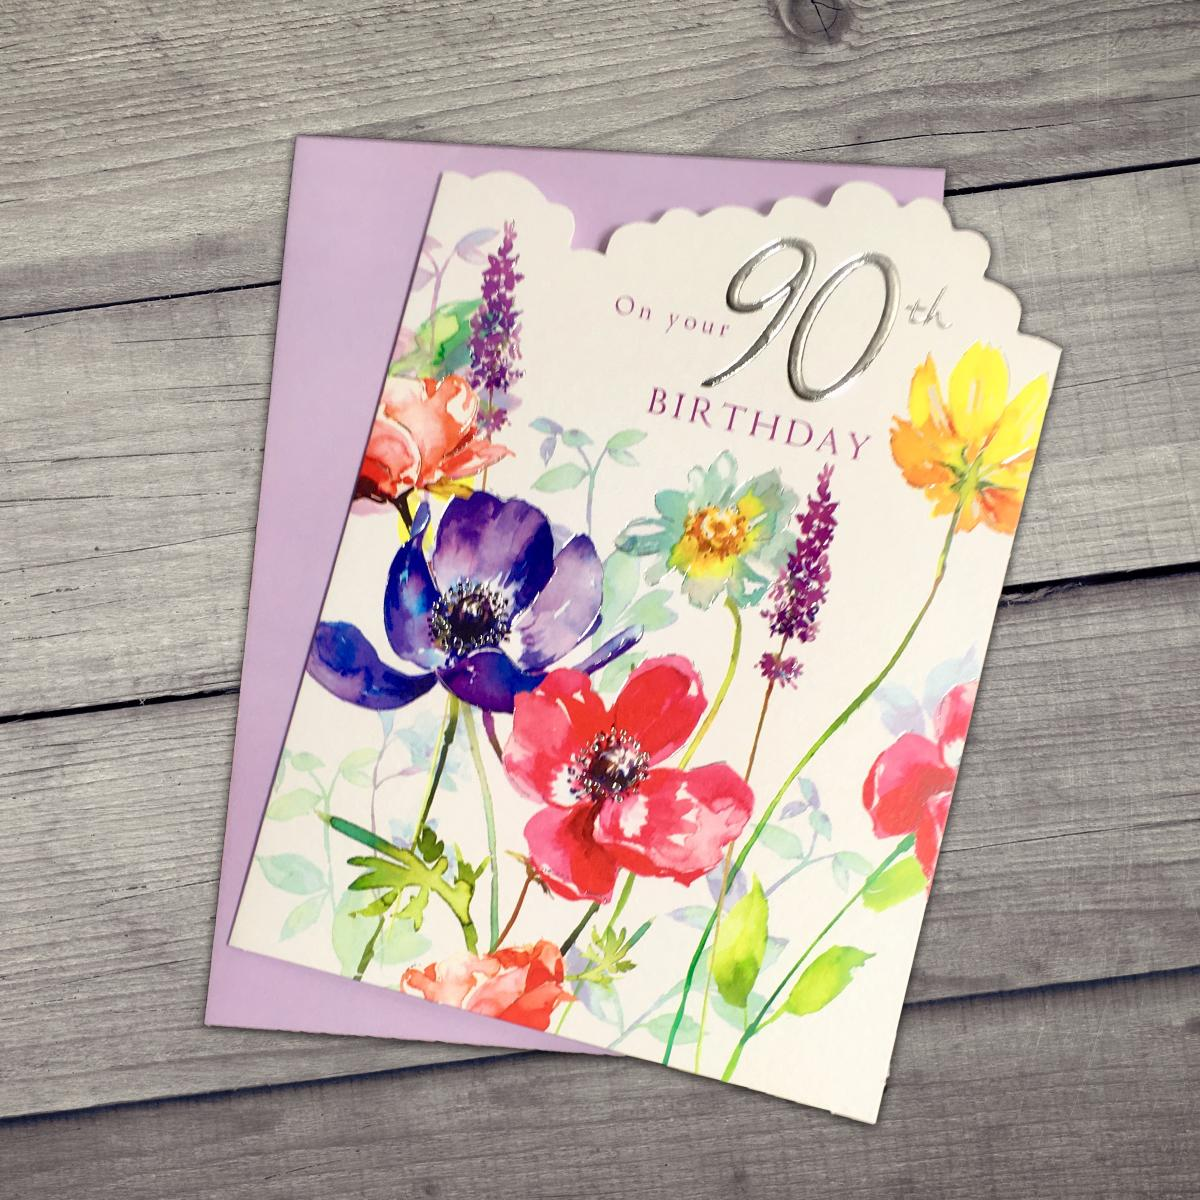 Age 90 Floral Birthday Card Alongside Its Lilac Envelope